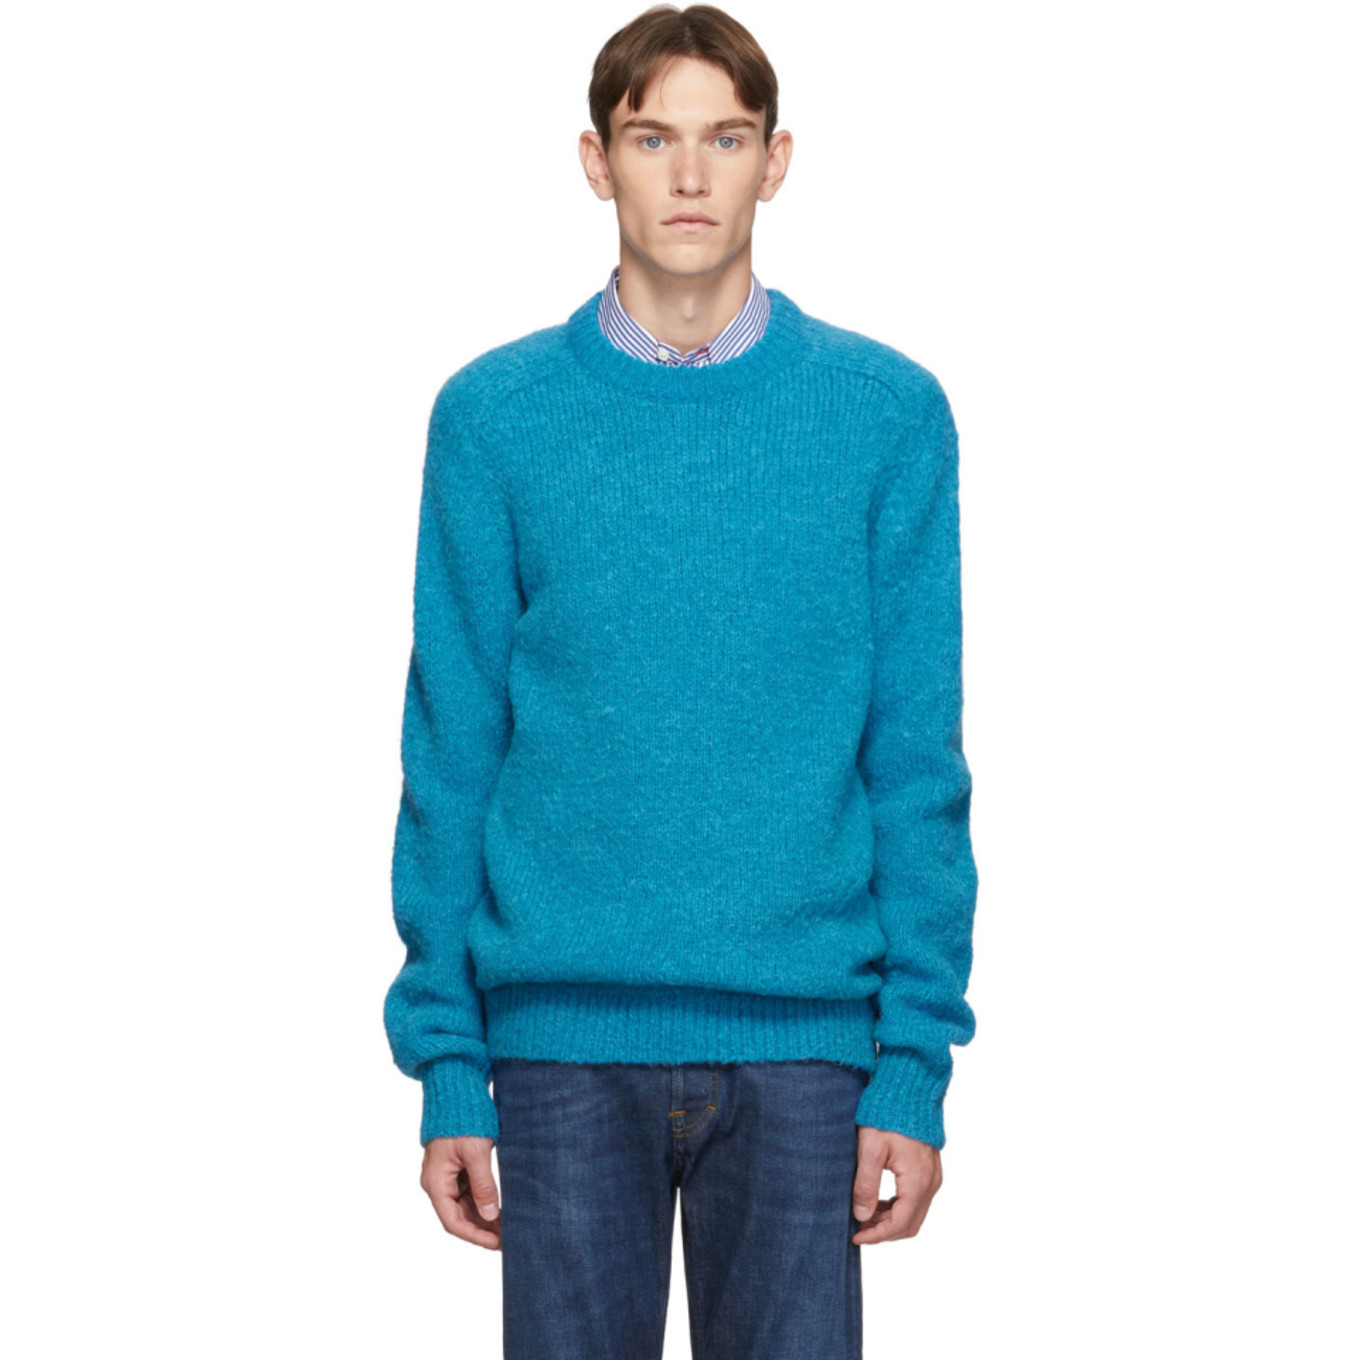 Blue Compose Sweater by Hope